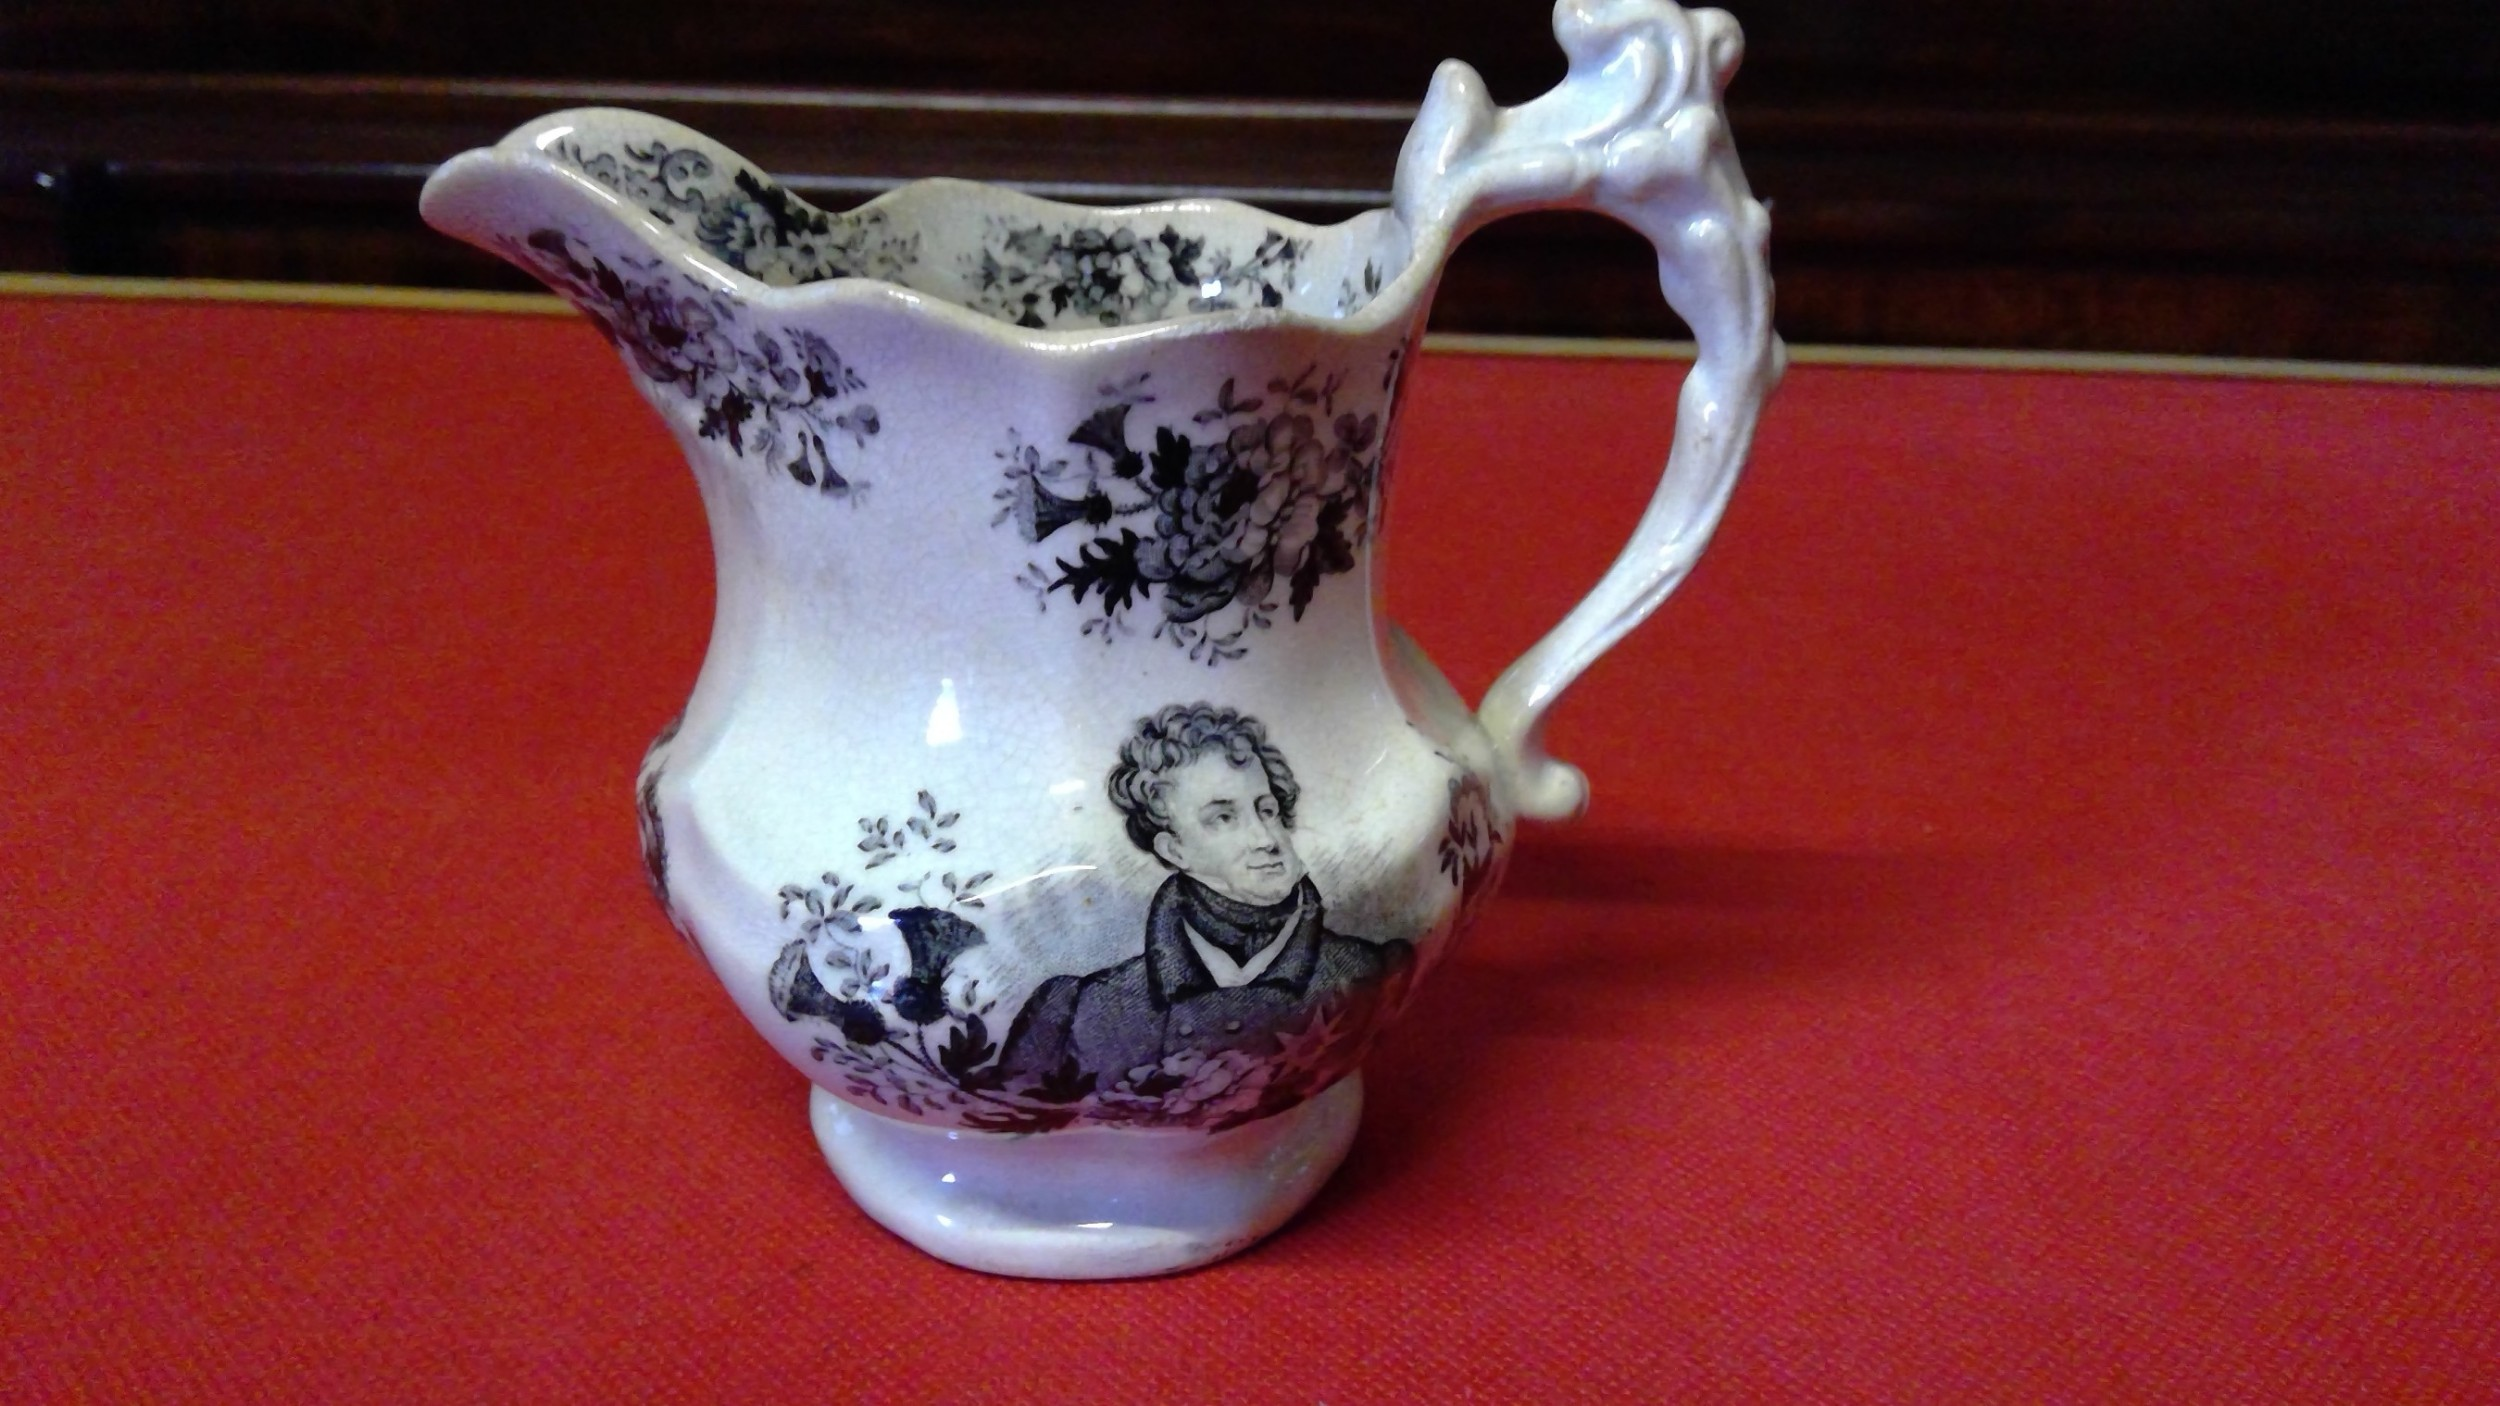 george 1v memorial morti black transfer printed jug by goodwinbridwood and harris pottery factory staffordshirecirca1830